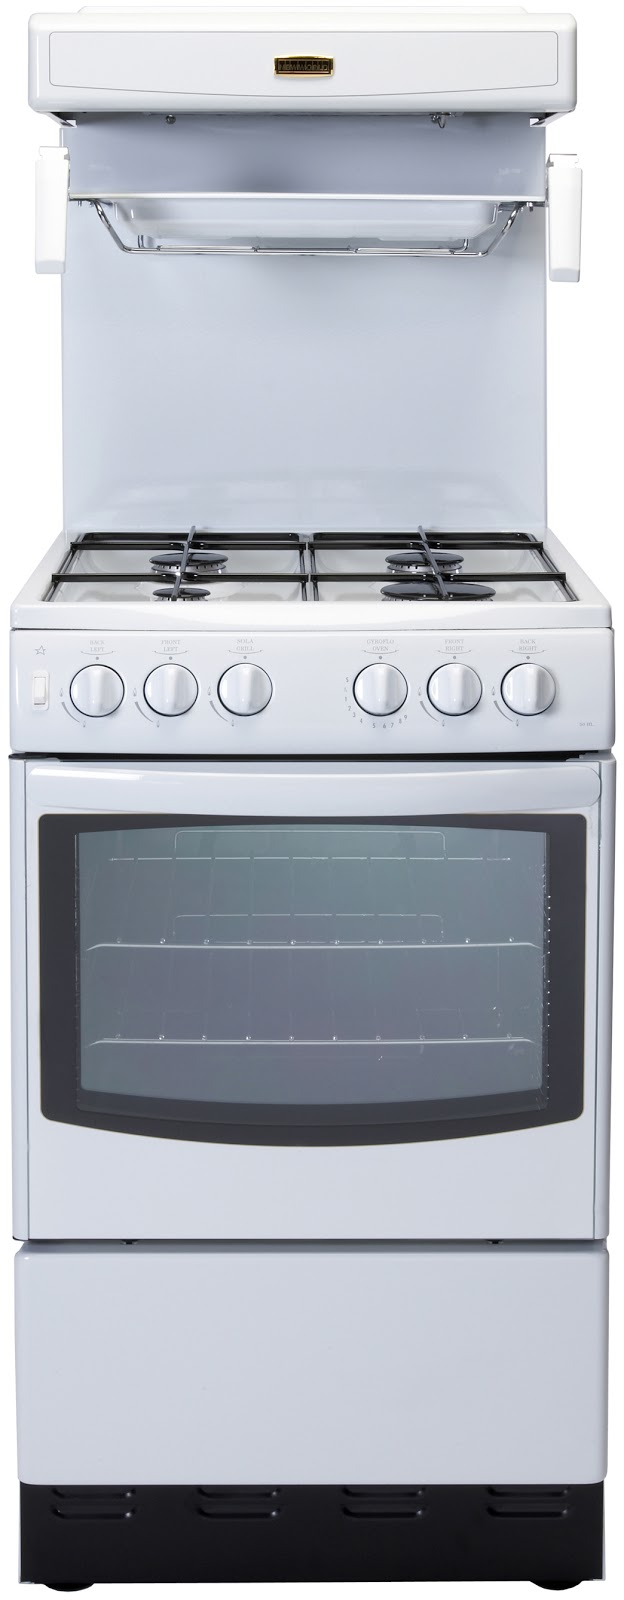 All Types Of Electrical And Electronic Appliances Kitchen